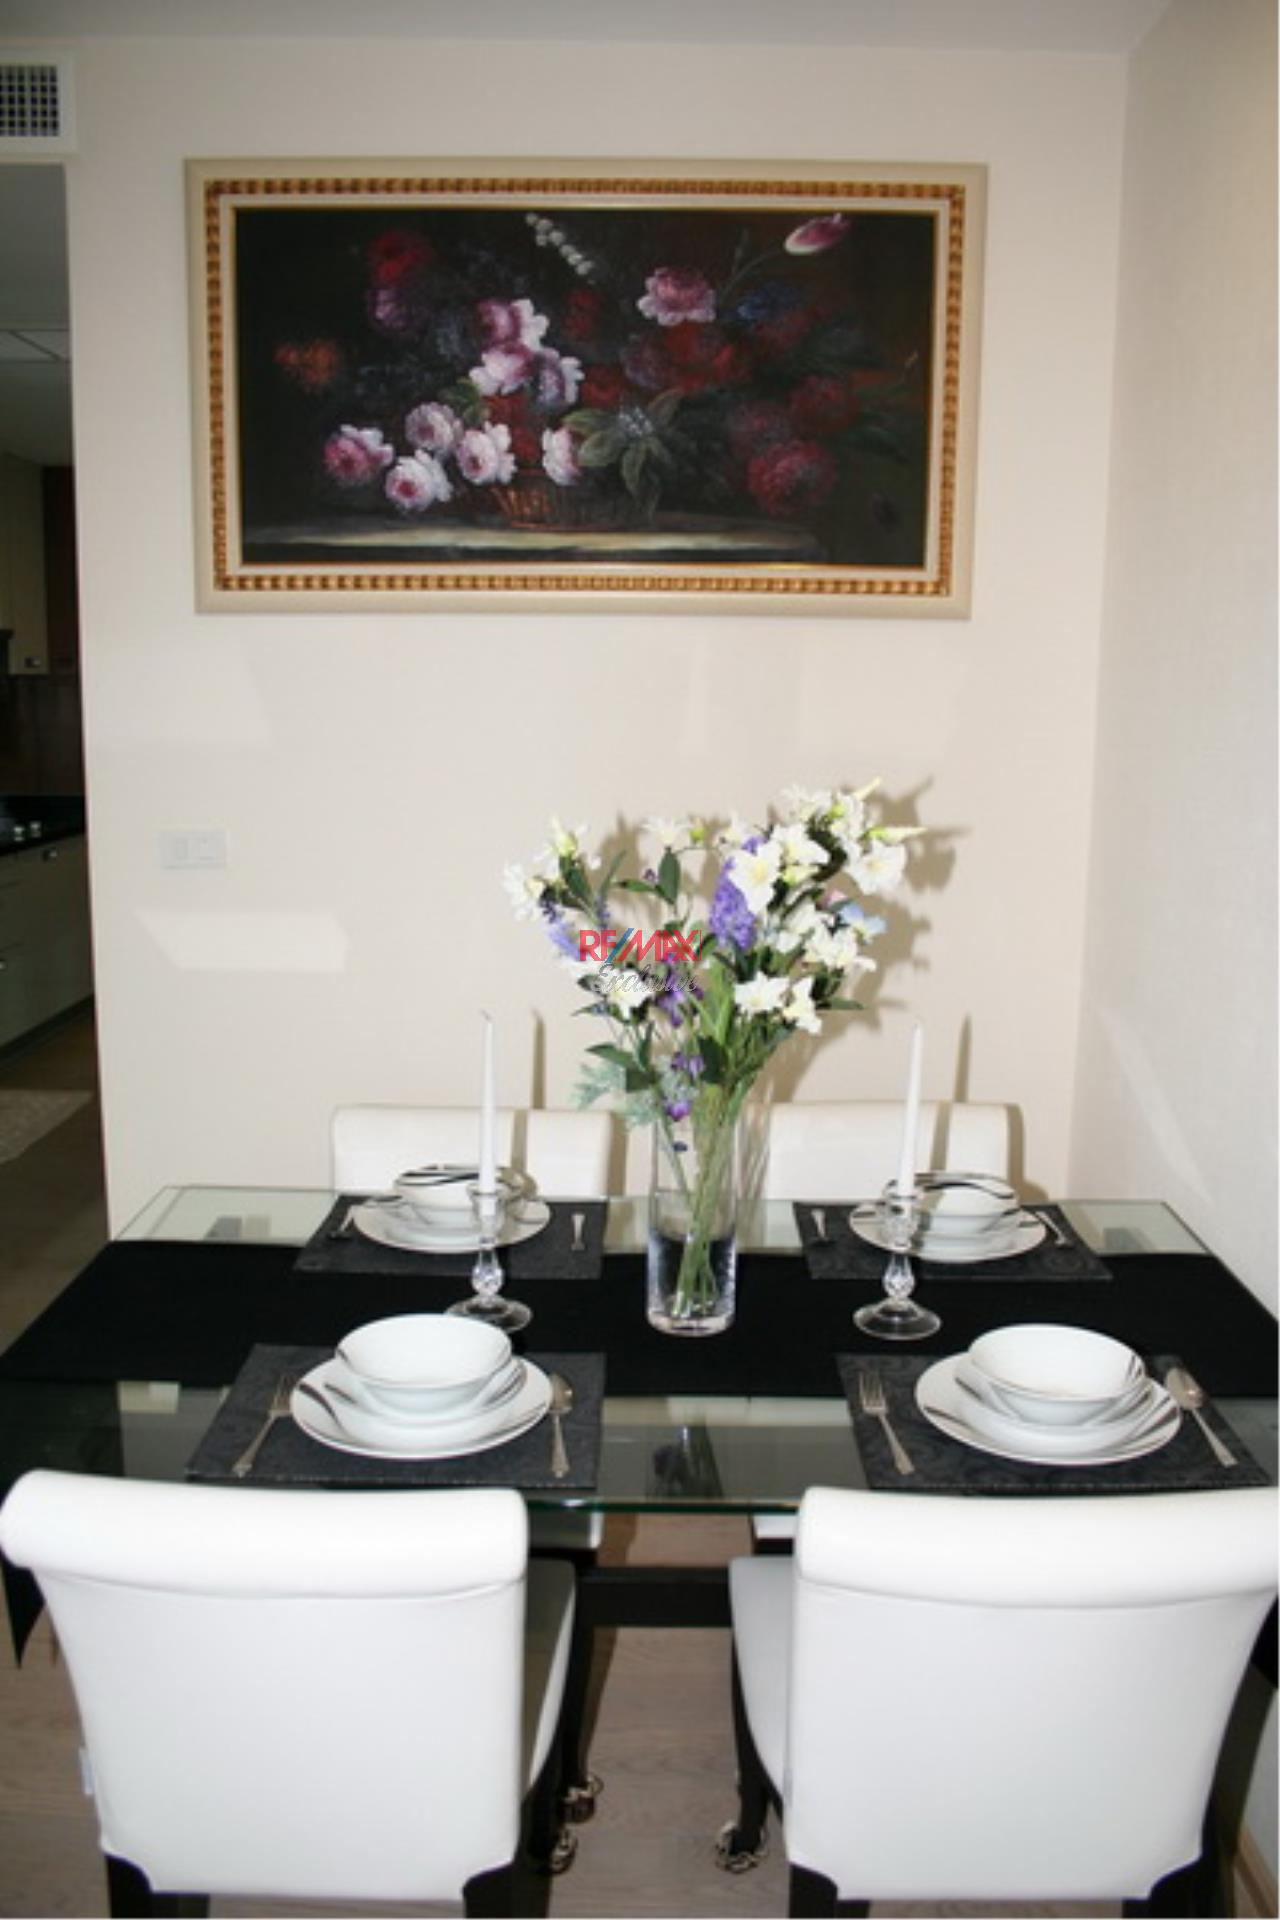 RE/MAX Exclusive Agency's NOBLE REMIX, Sukhumvit 36, 62 Sqm., 1 Bedroom, Fully-Furnished, European Style Decoration - RENT !! 26